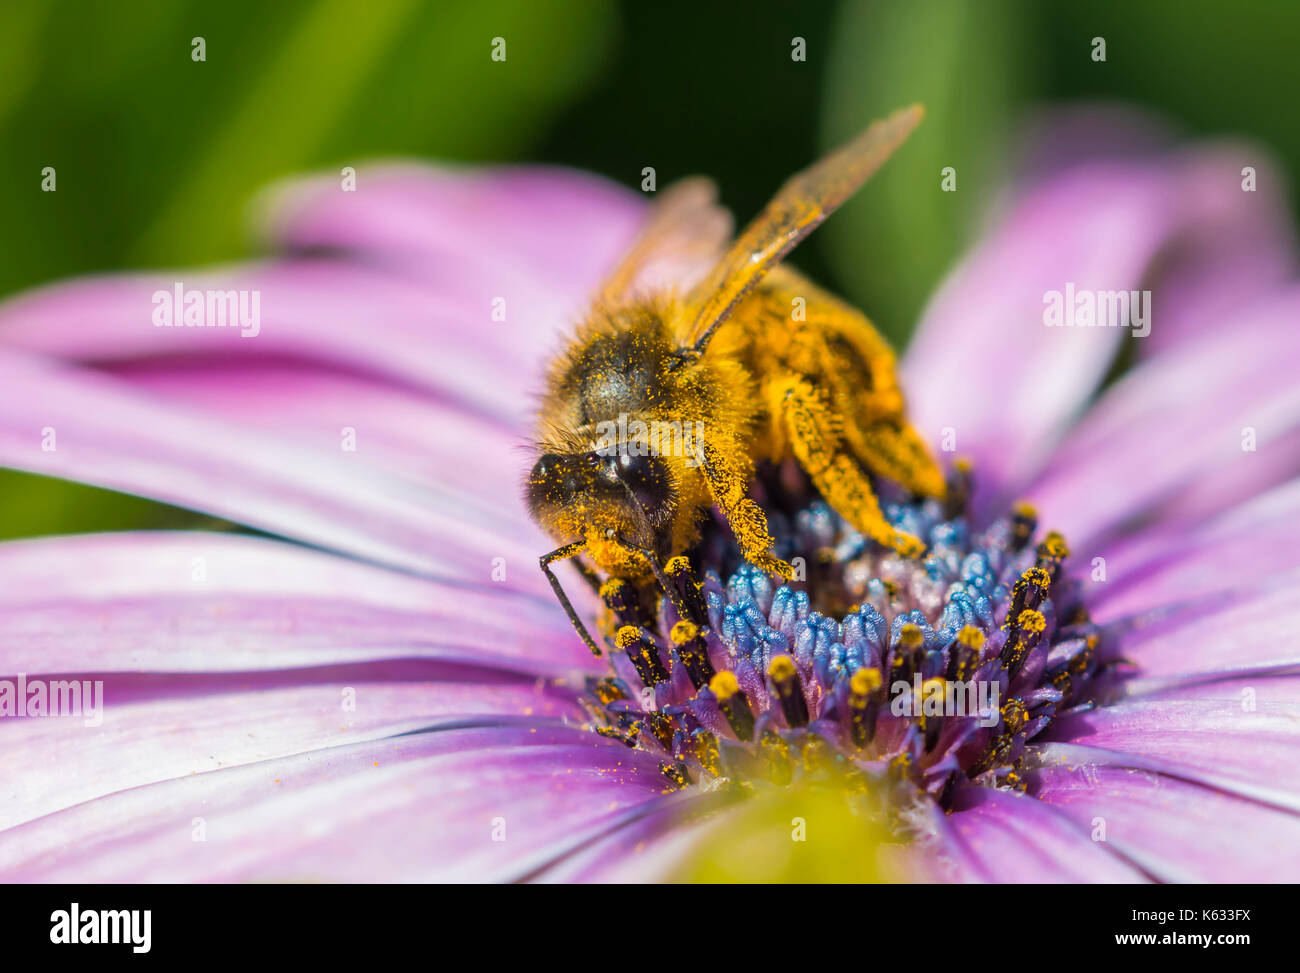 Honey Bee (Apis mellifera) on Osteospermum ecklonis (African daisy) collecting nectar / pollinating flower in West Stock Photo